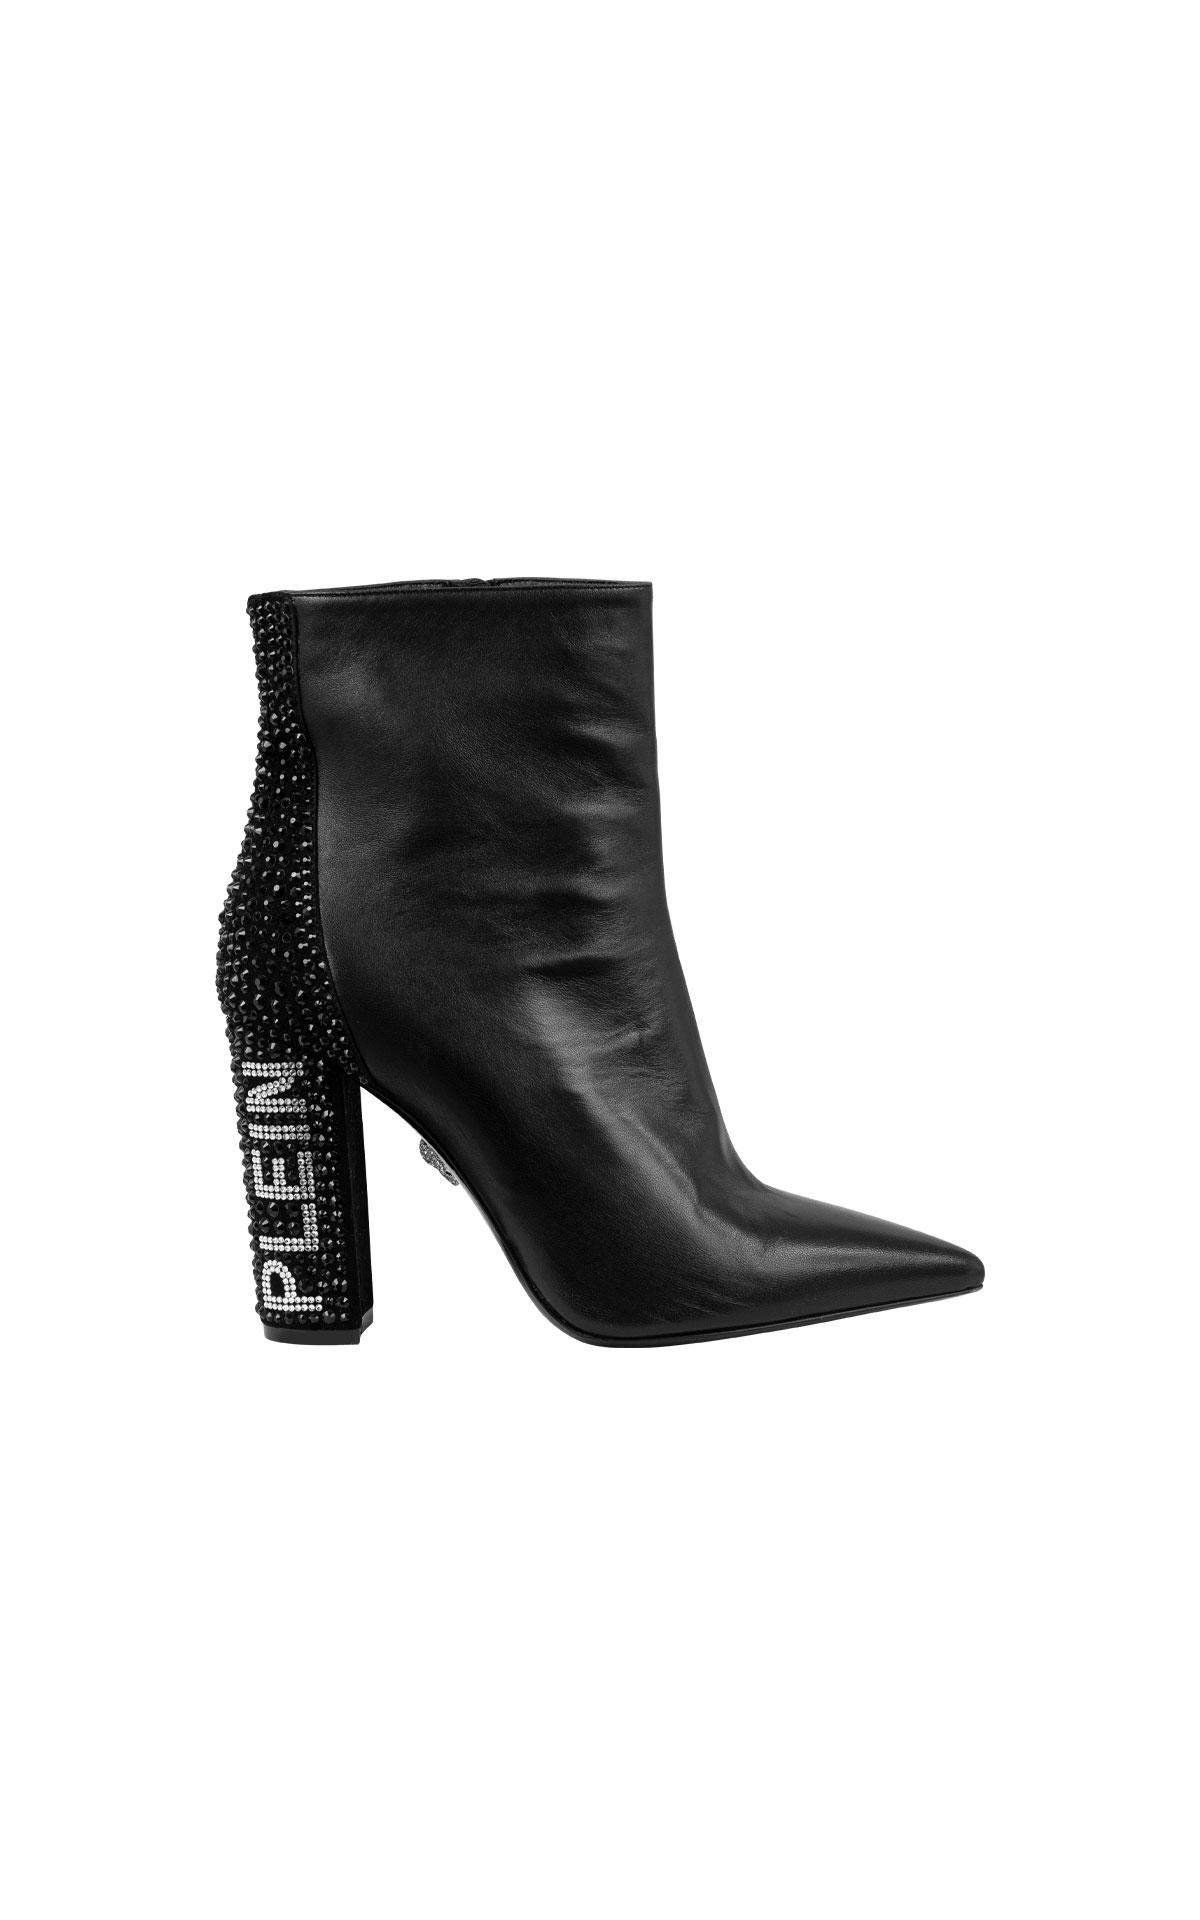 Philipp Plein Boots black